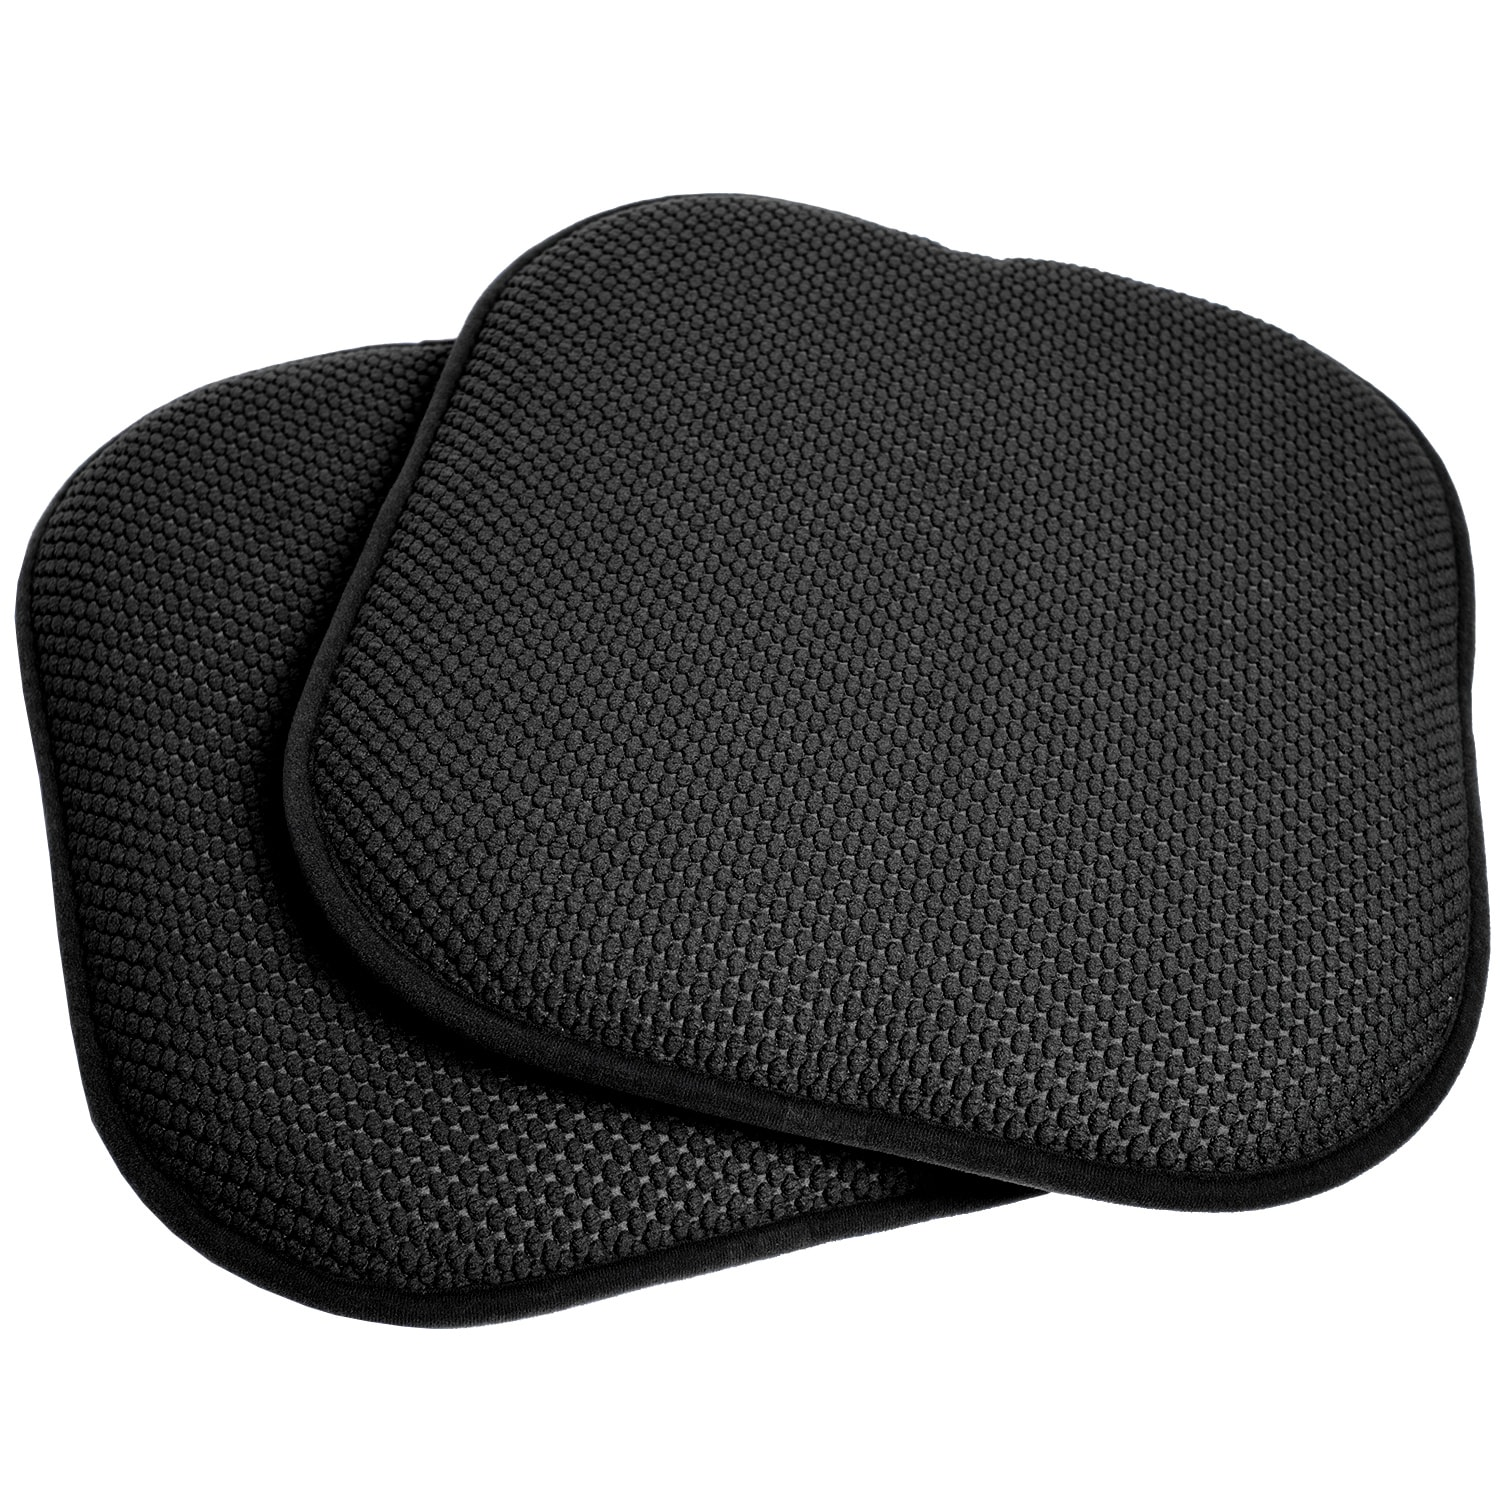 Cool Black 16 Inch Memory Foam Chair Pad Seat Cushion With Non Slip Backing 2 Or 4 Pack Pabps2019 Chair Design Images Pabps2019Com